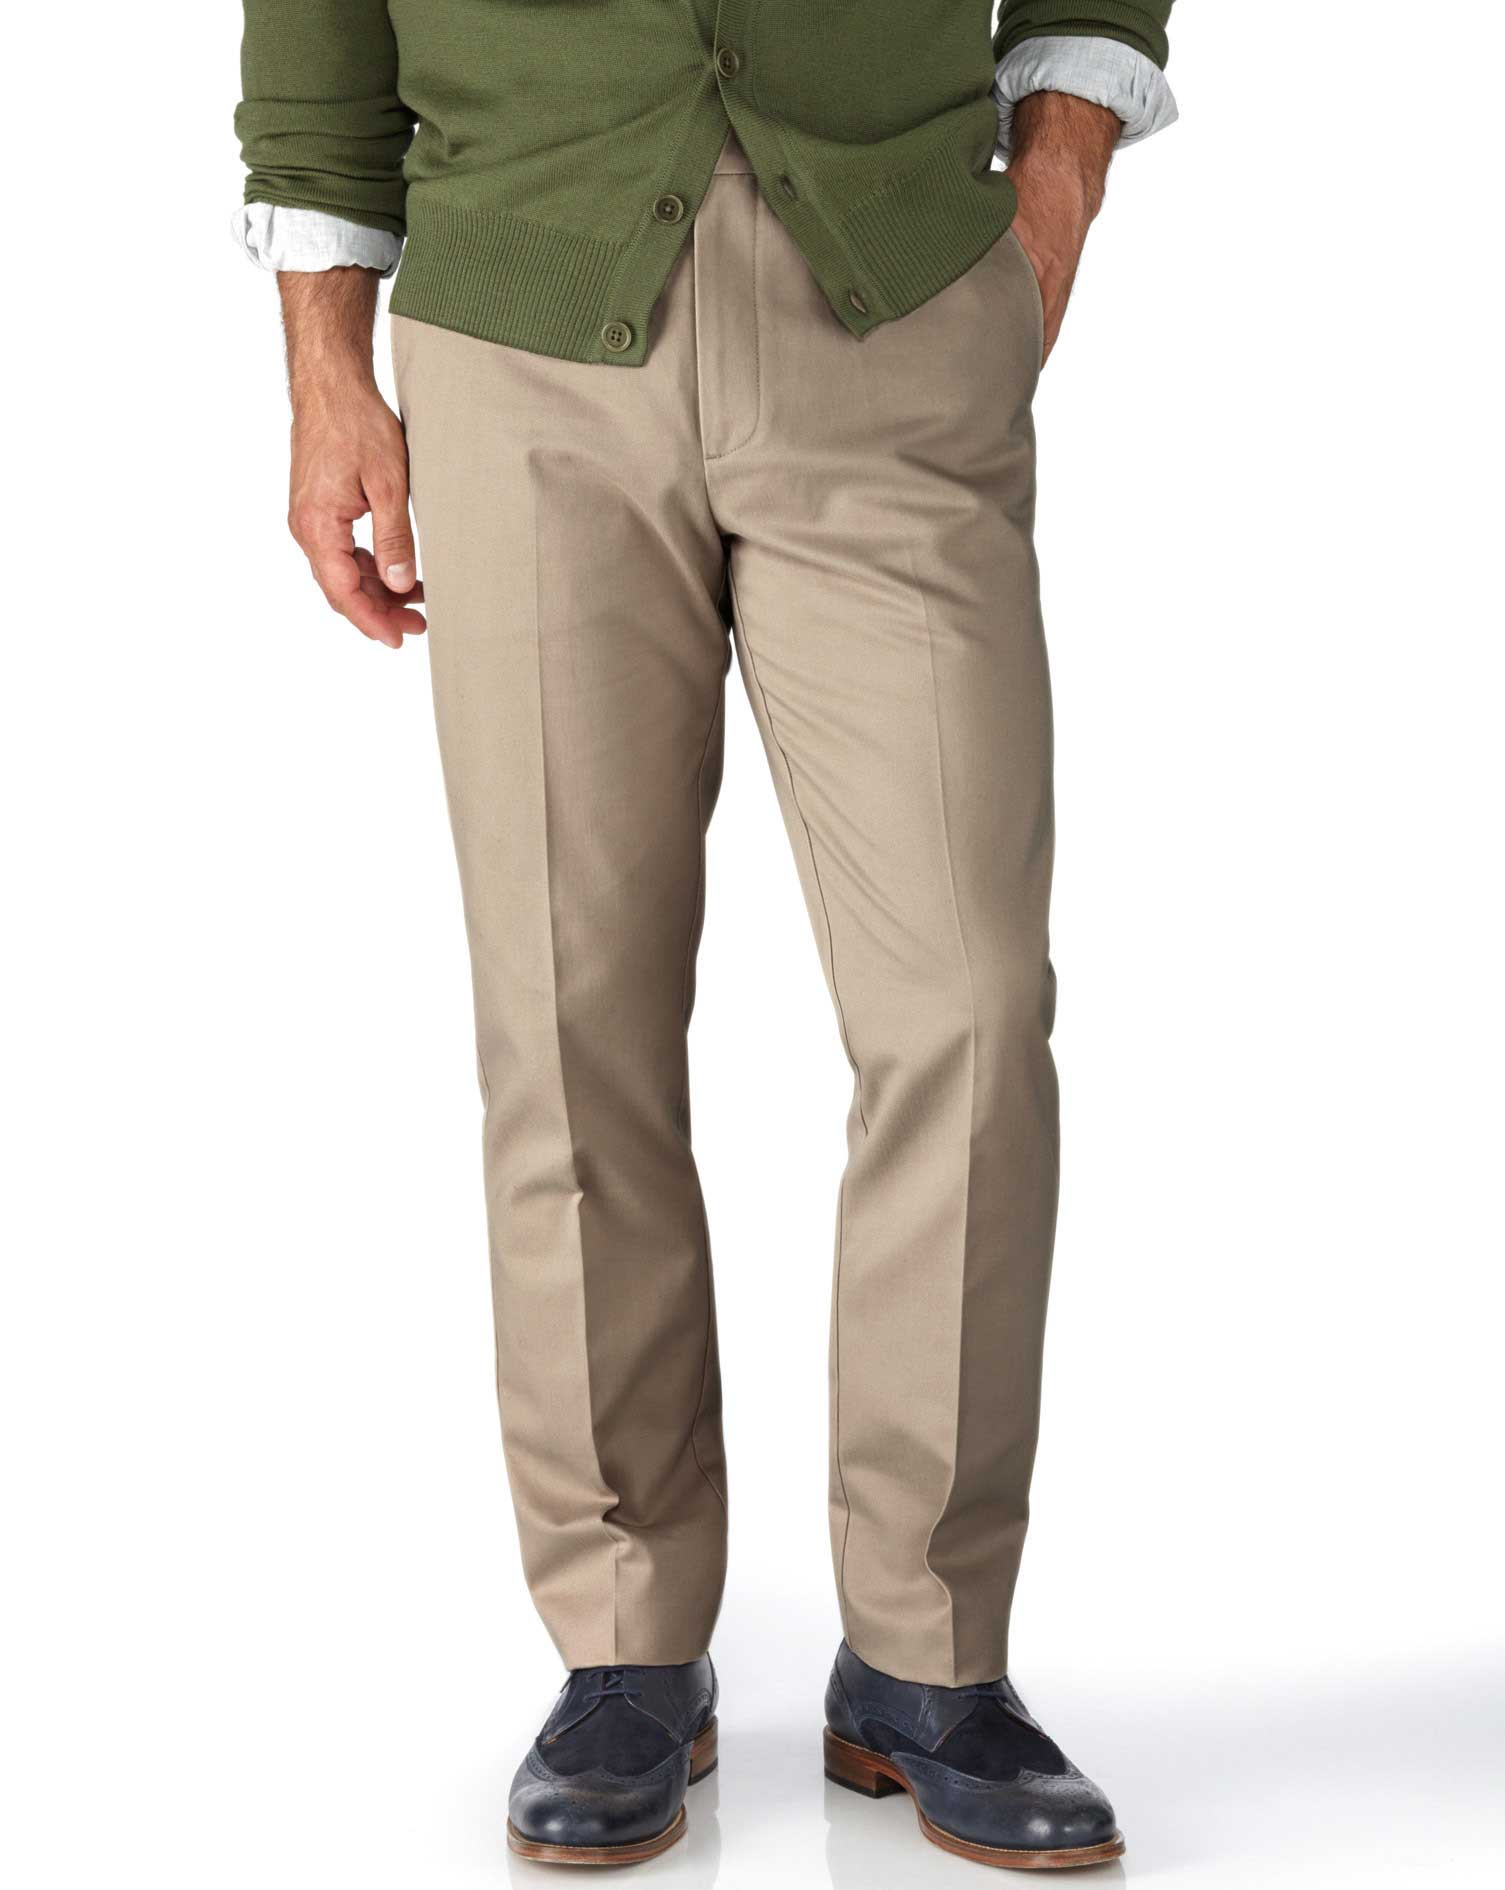 Stone Extra Slim Fit Flat Front Non-Iron Cotton Chino Trousers Size W30 L30 by Charles Tyrwhitt